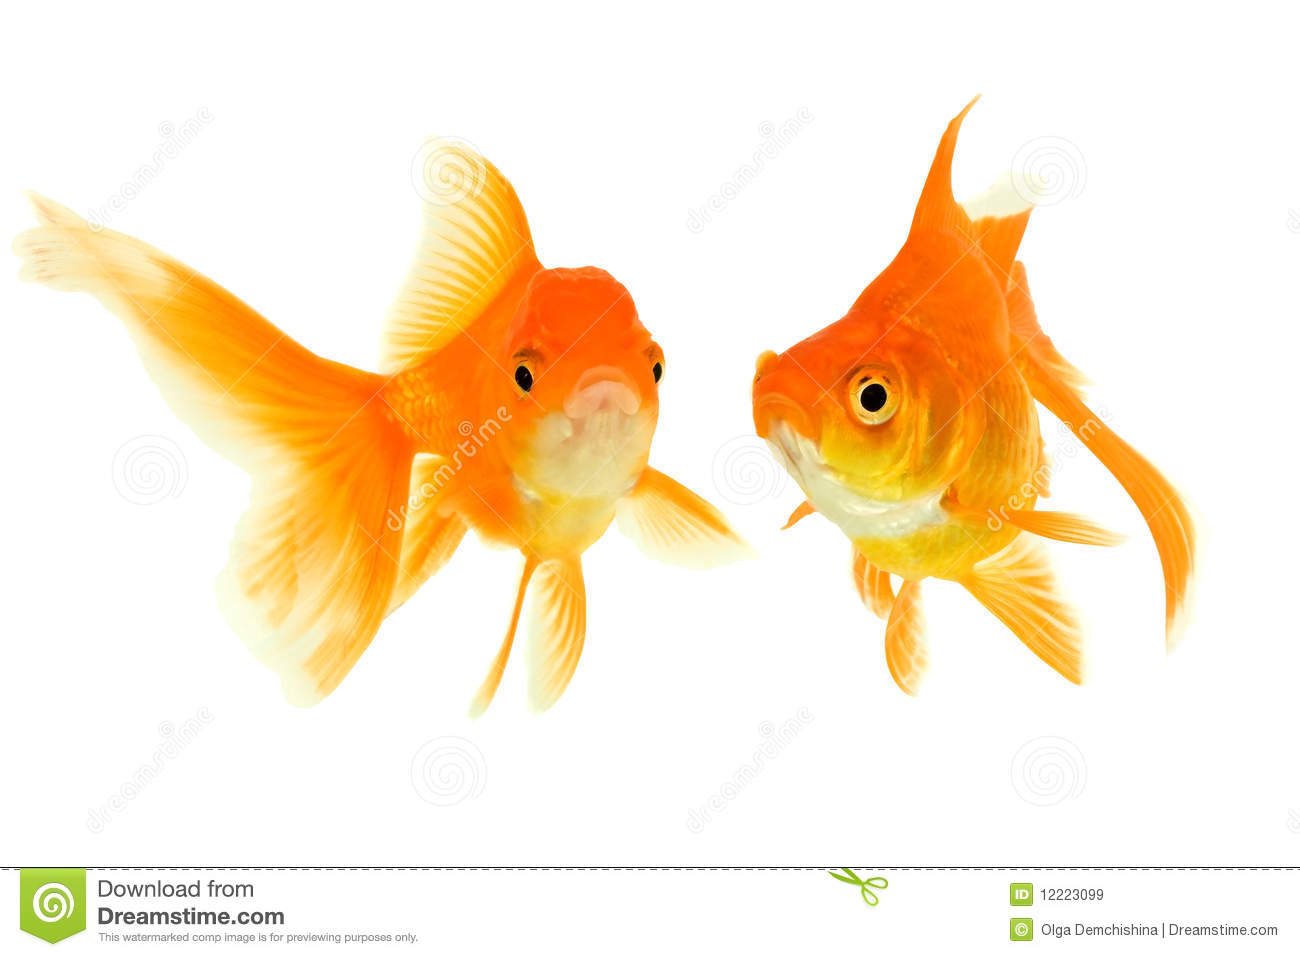 Female and the male of the goldfishes isolated on a white background.